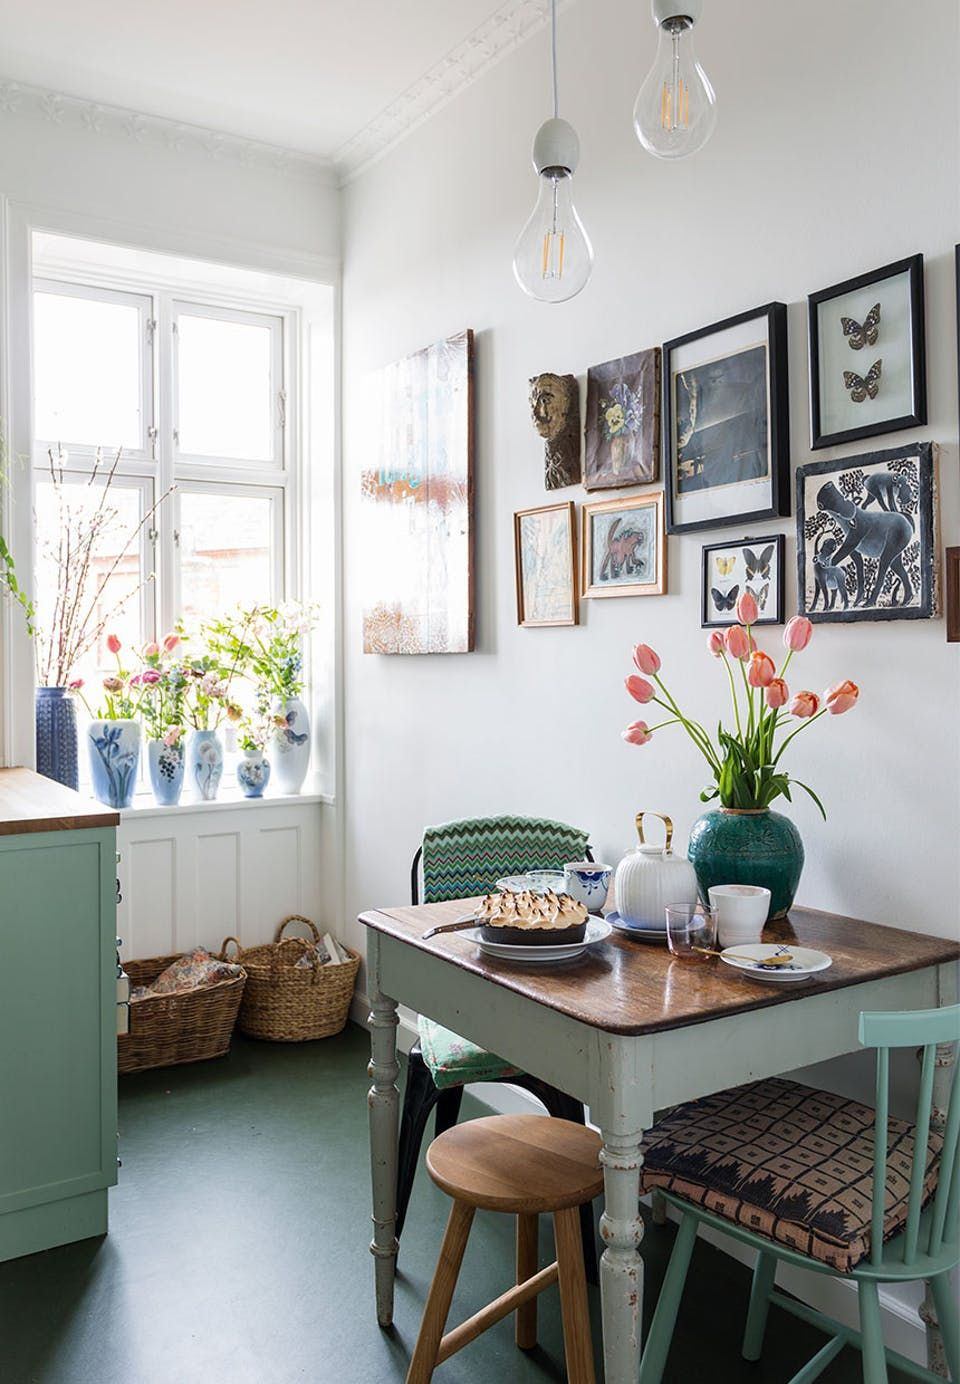 Green Color Palette Reigns in This Copenhagen Home | Depto, Las ...